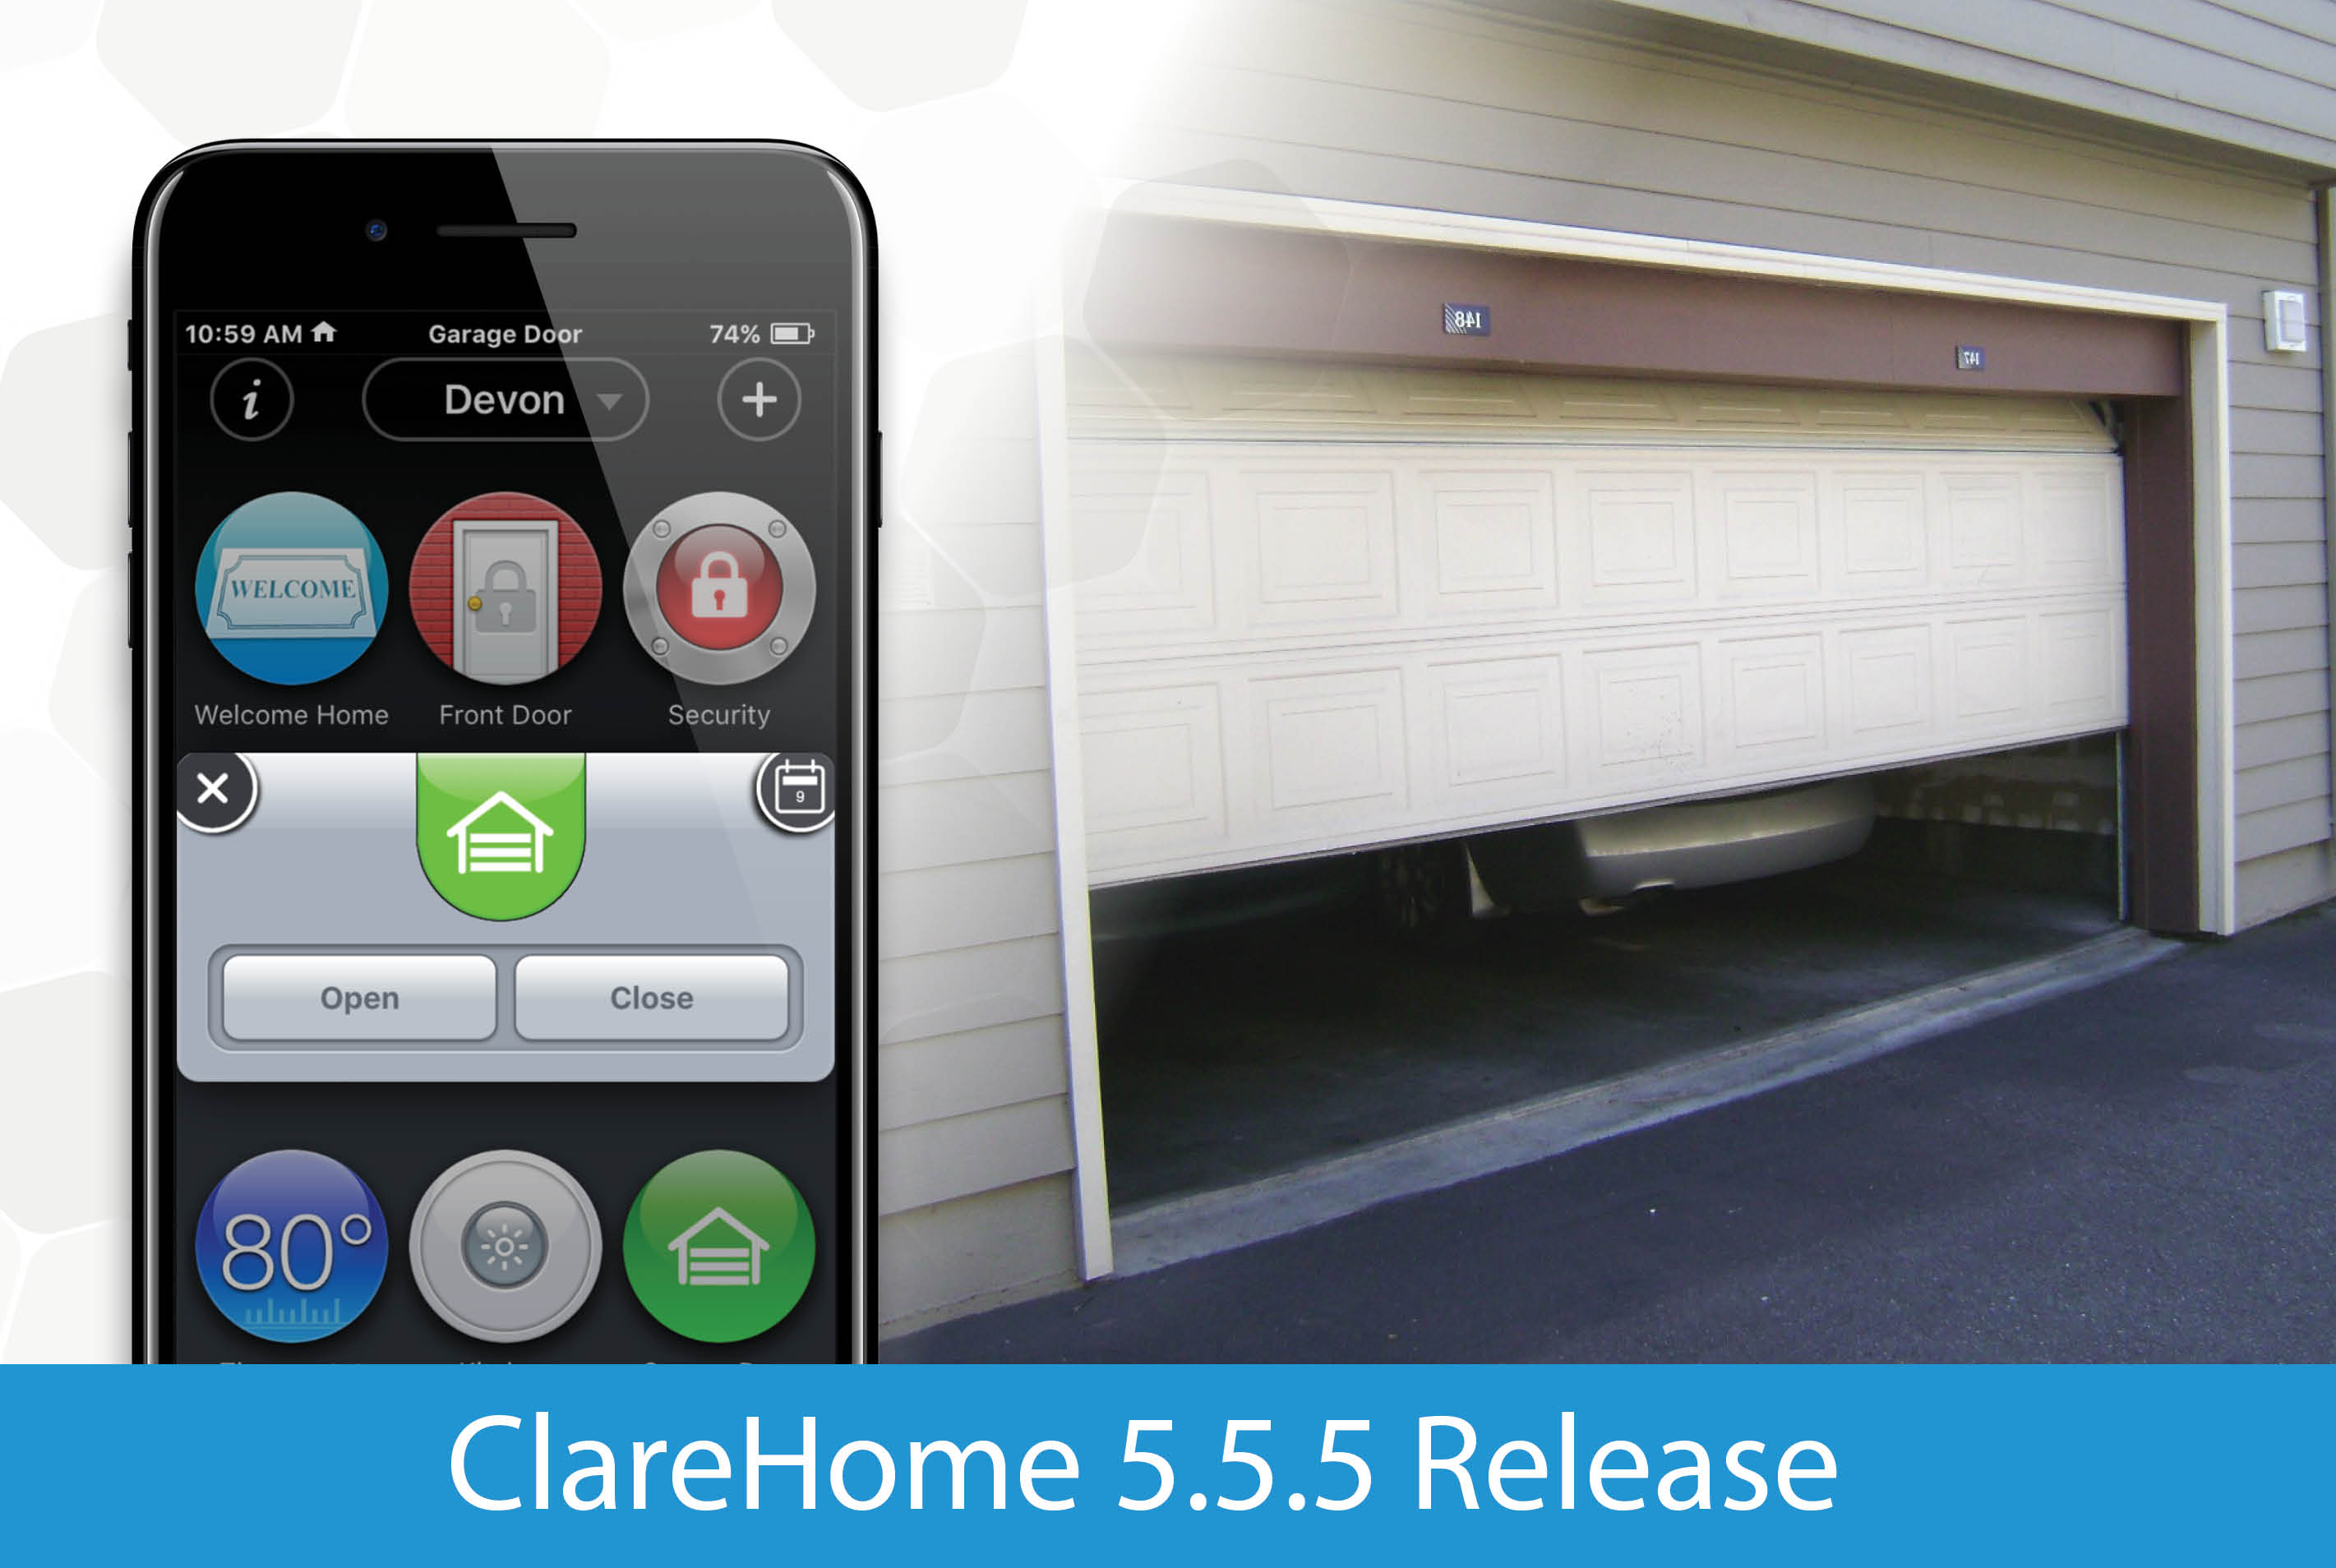 ClareHome v5.5.5 Release